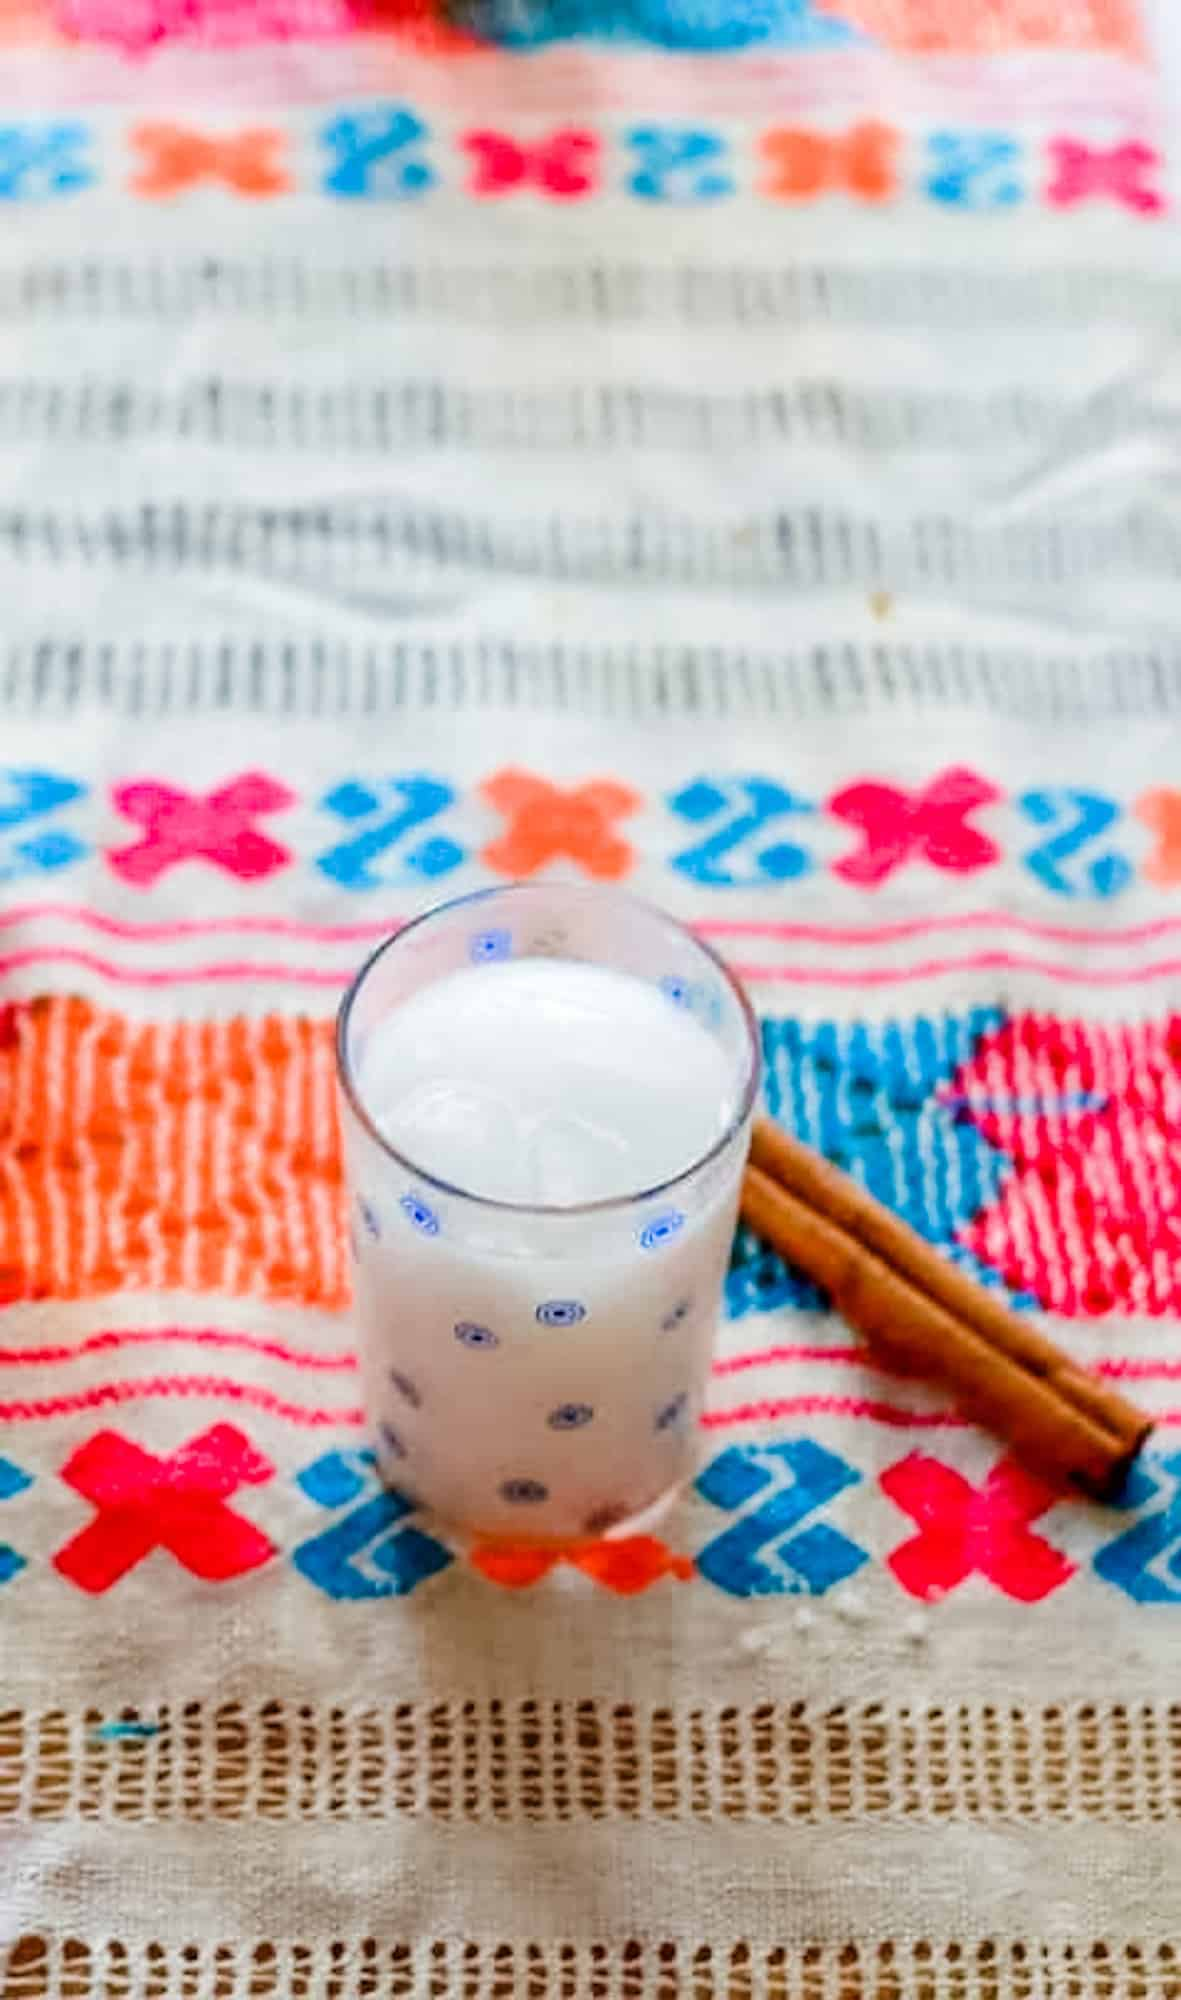 A cup of horchata sitting on a colorful tablecloth with a cinnamon stick next to it.